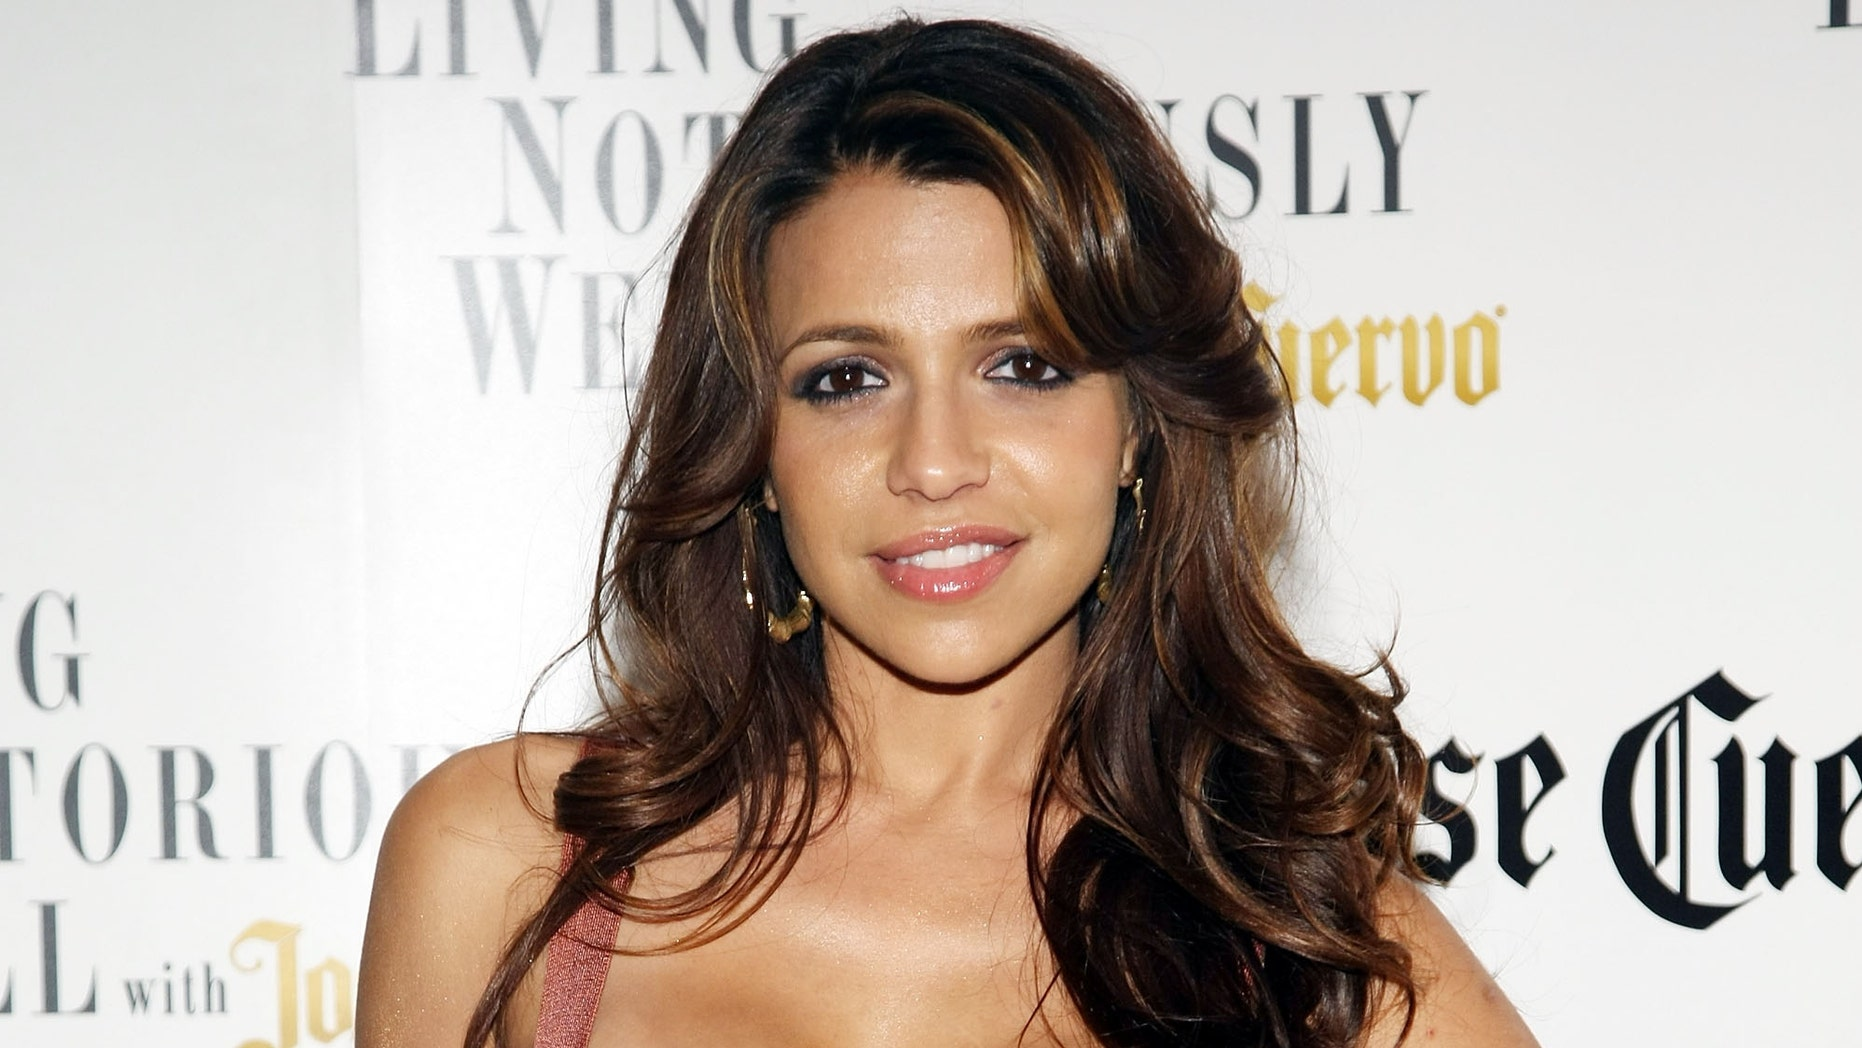 Hacked Vida Guerra nude photos 2019